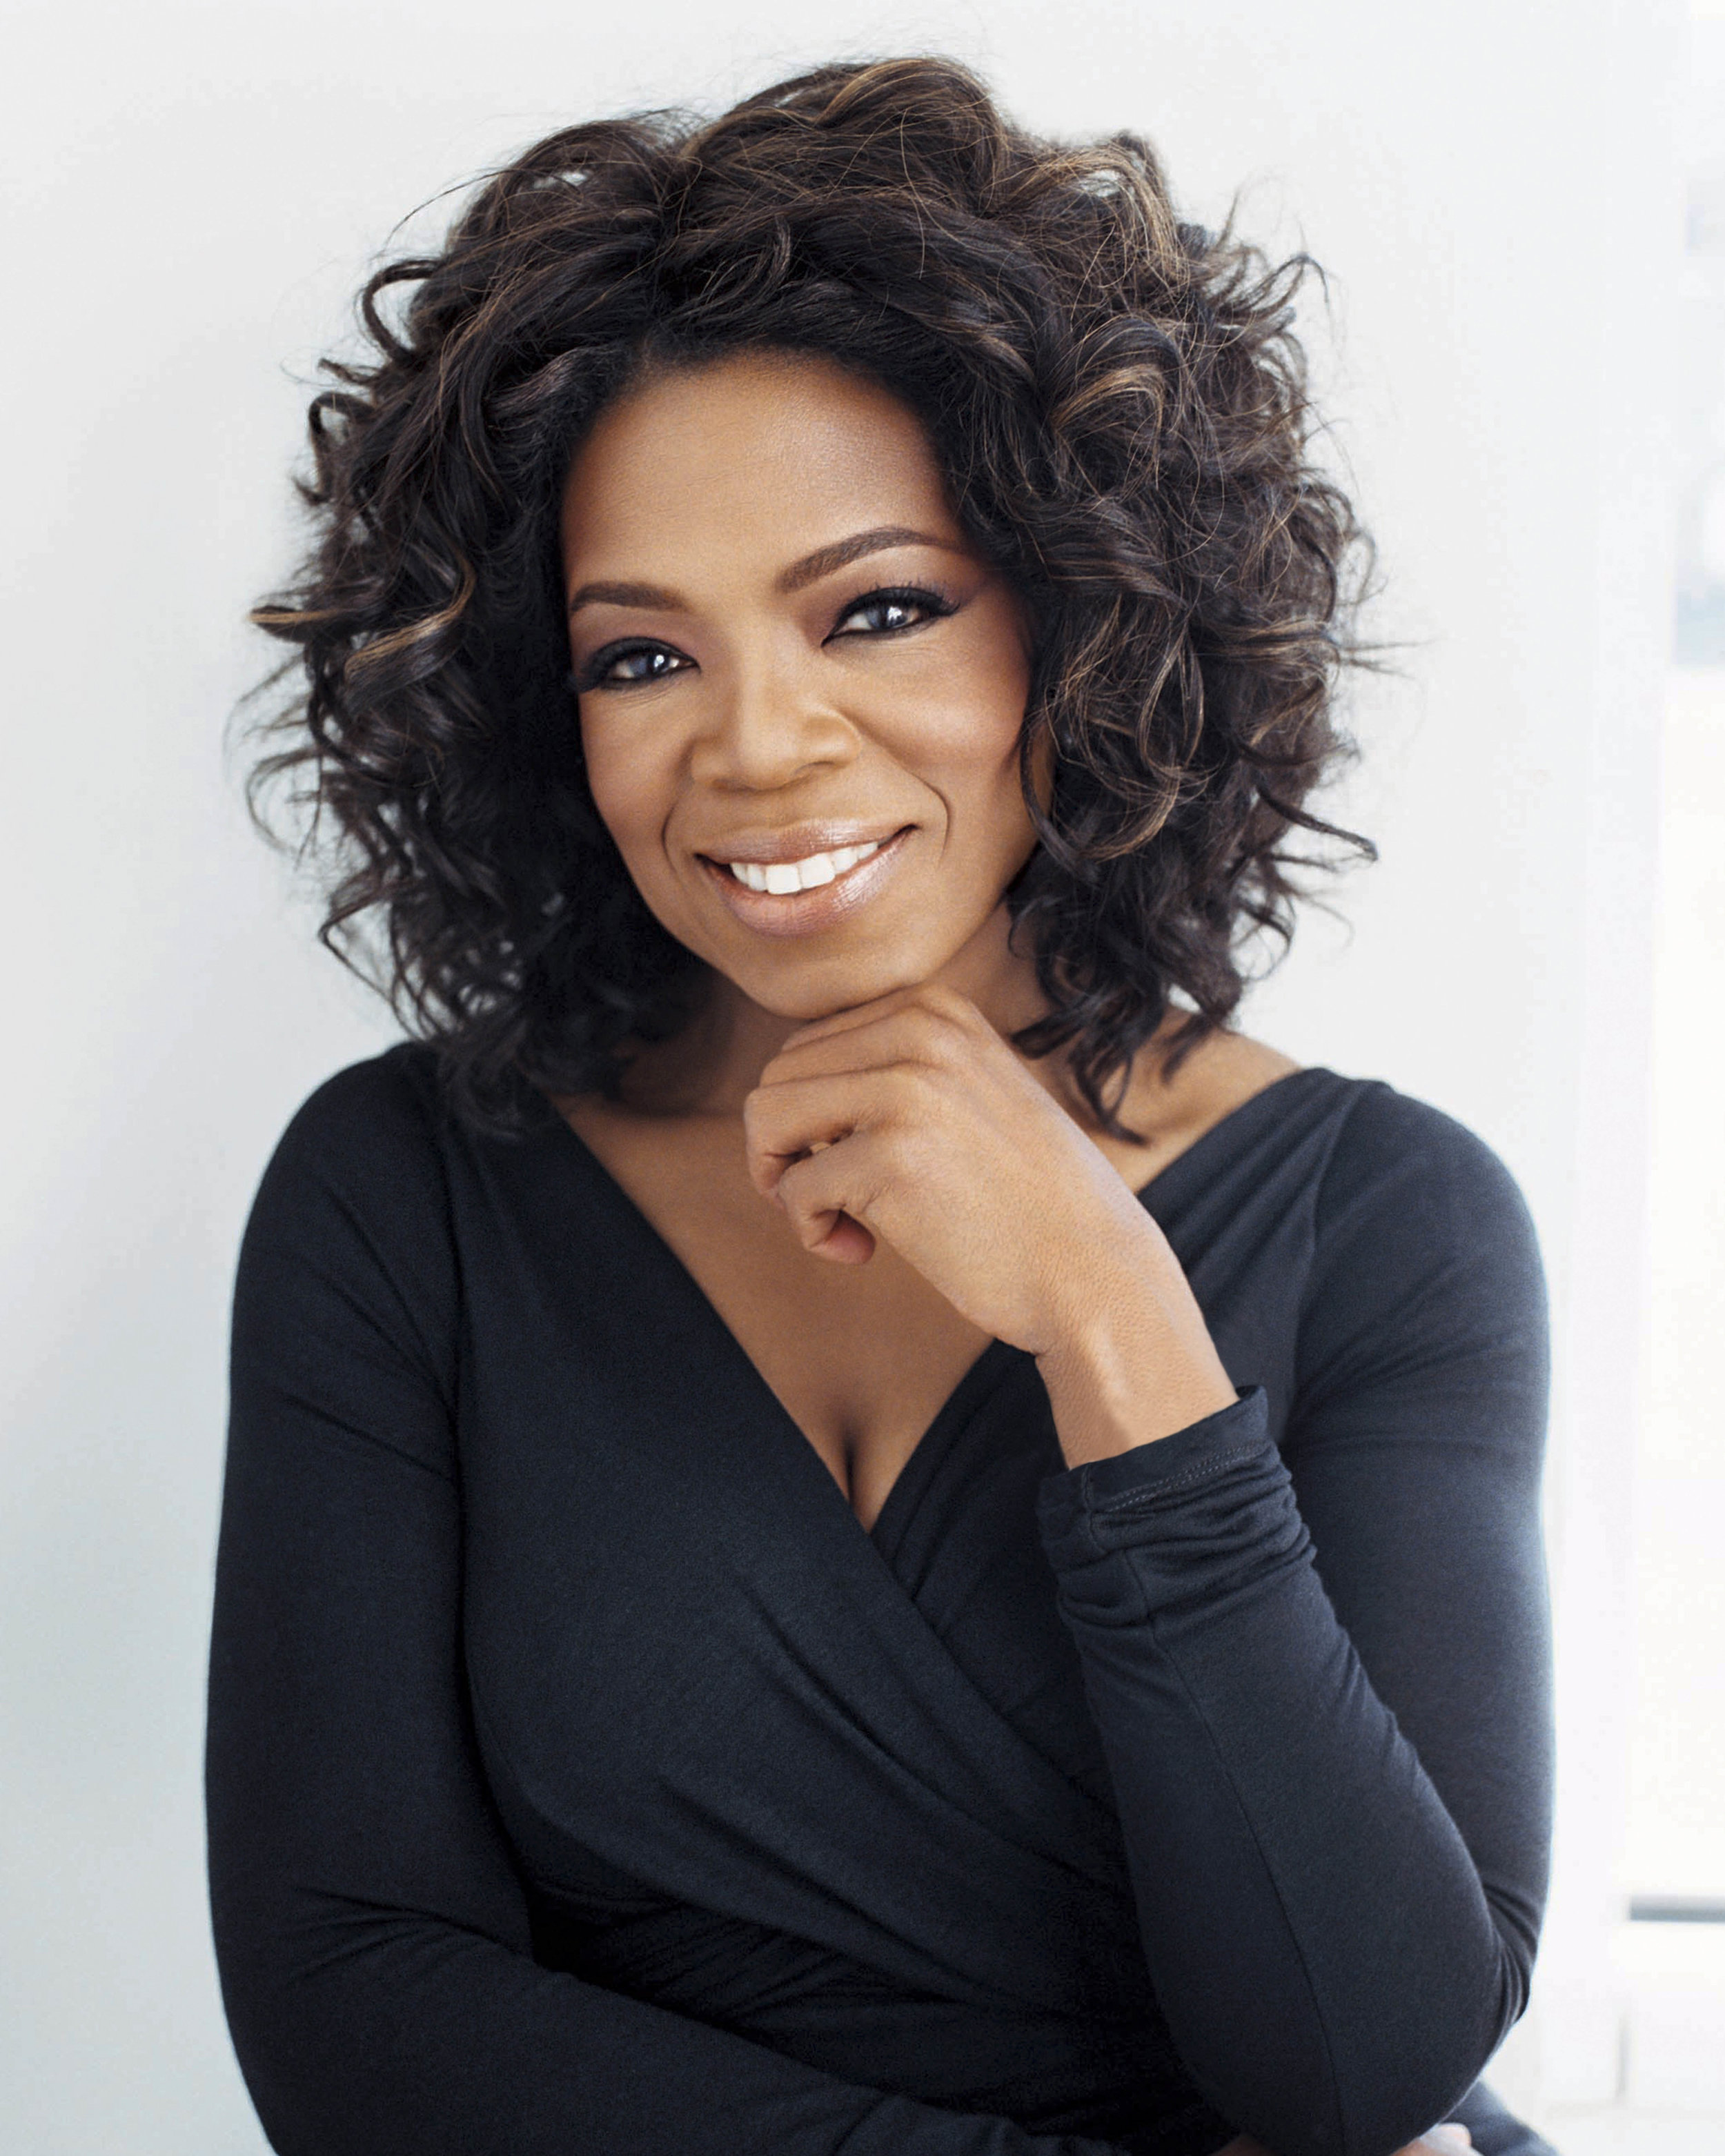 Oprah Winfrey - First woman to own, produce, and host her own talk show